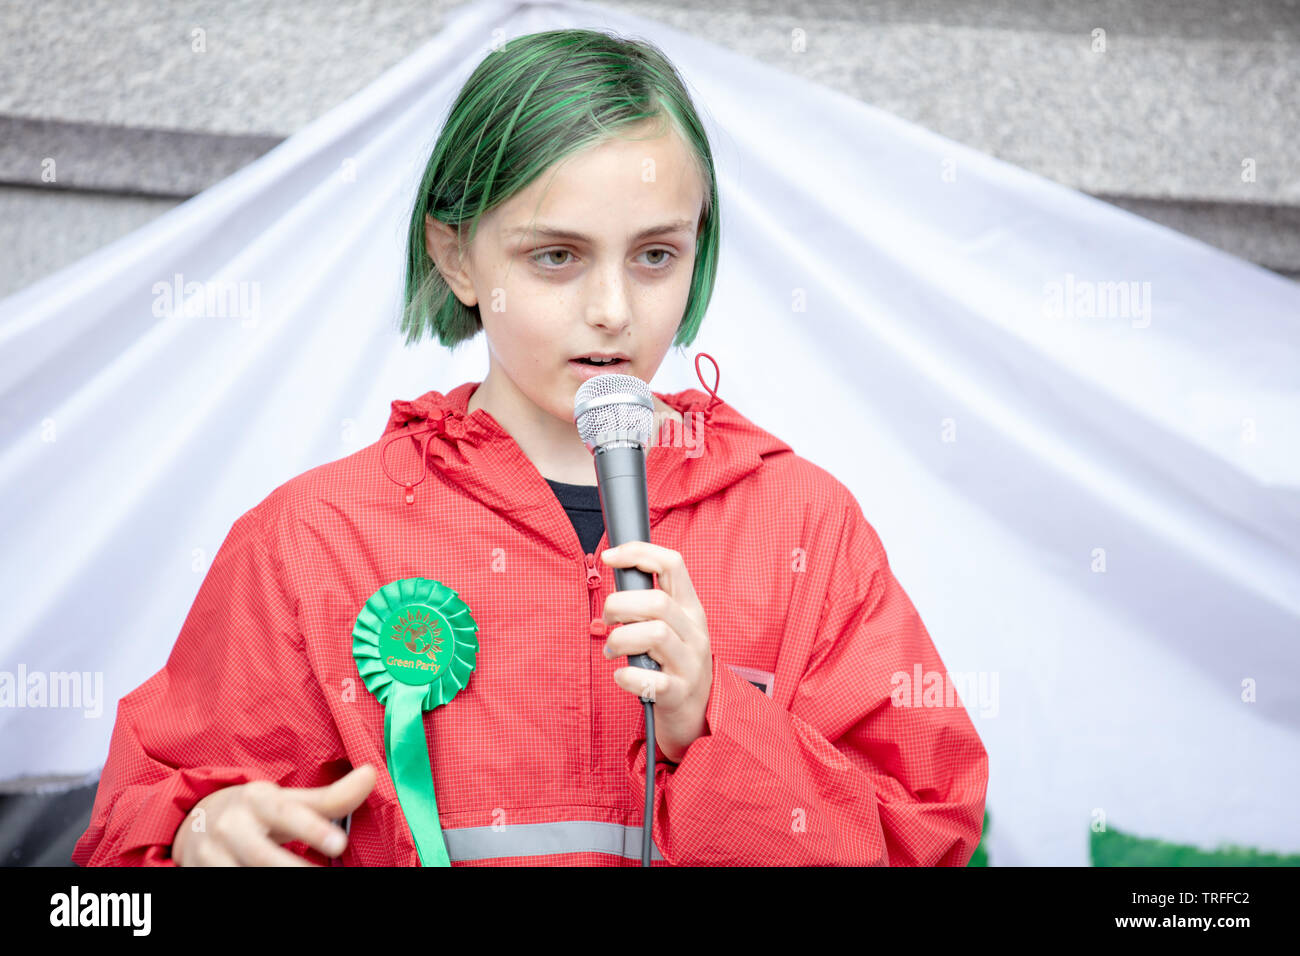 London, UK. 4th June 2019. Student climate change activist Max holds a presentation for student climate network on Trafalgar Square before the protesters protest in central London on Trafalgar Square, Whitehall and Parliament Square against the President of the USA, Donald Trump, visiting the UK. Credit: Joe Kuis / Alamy - Stock Image